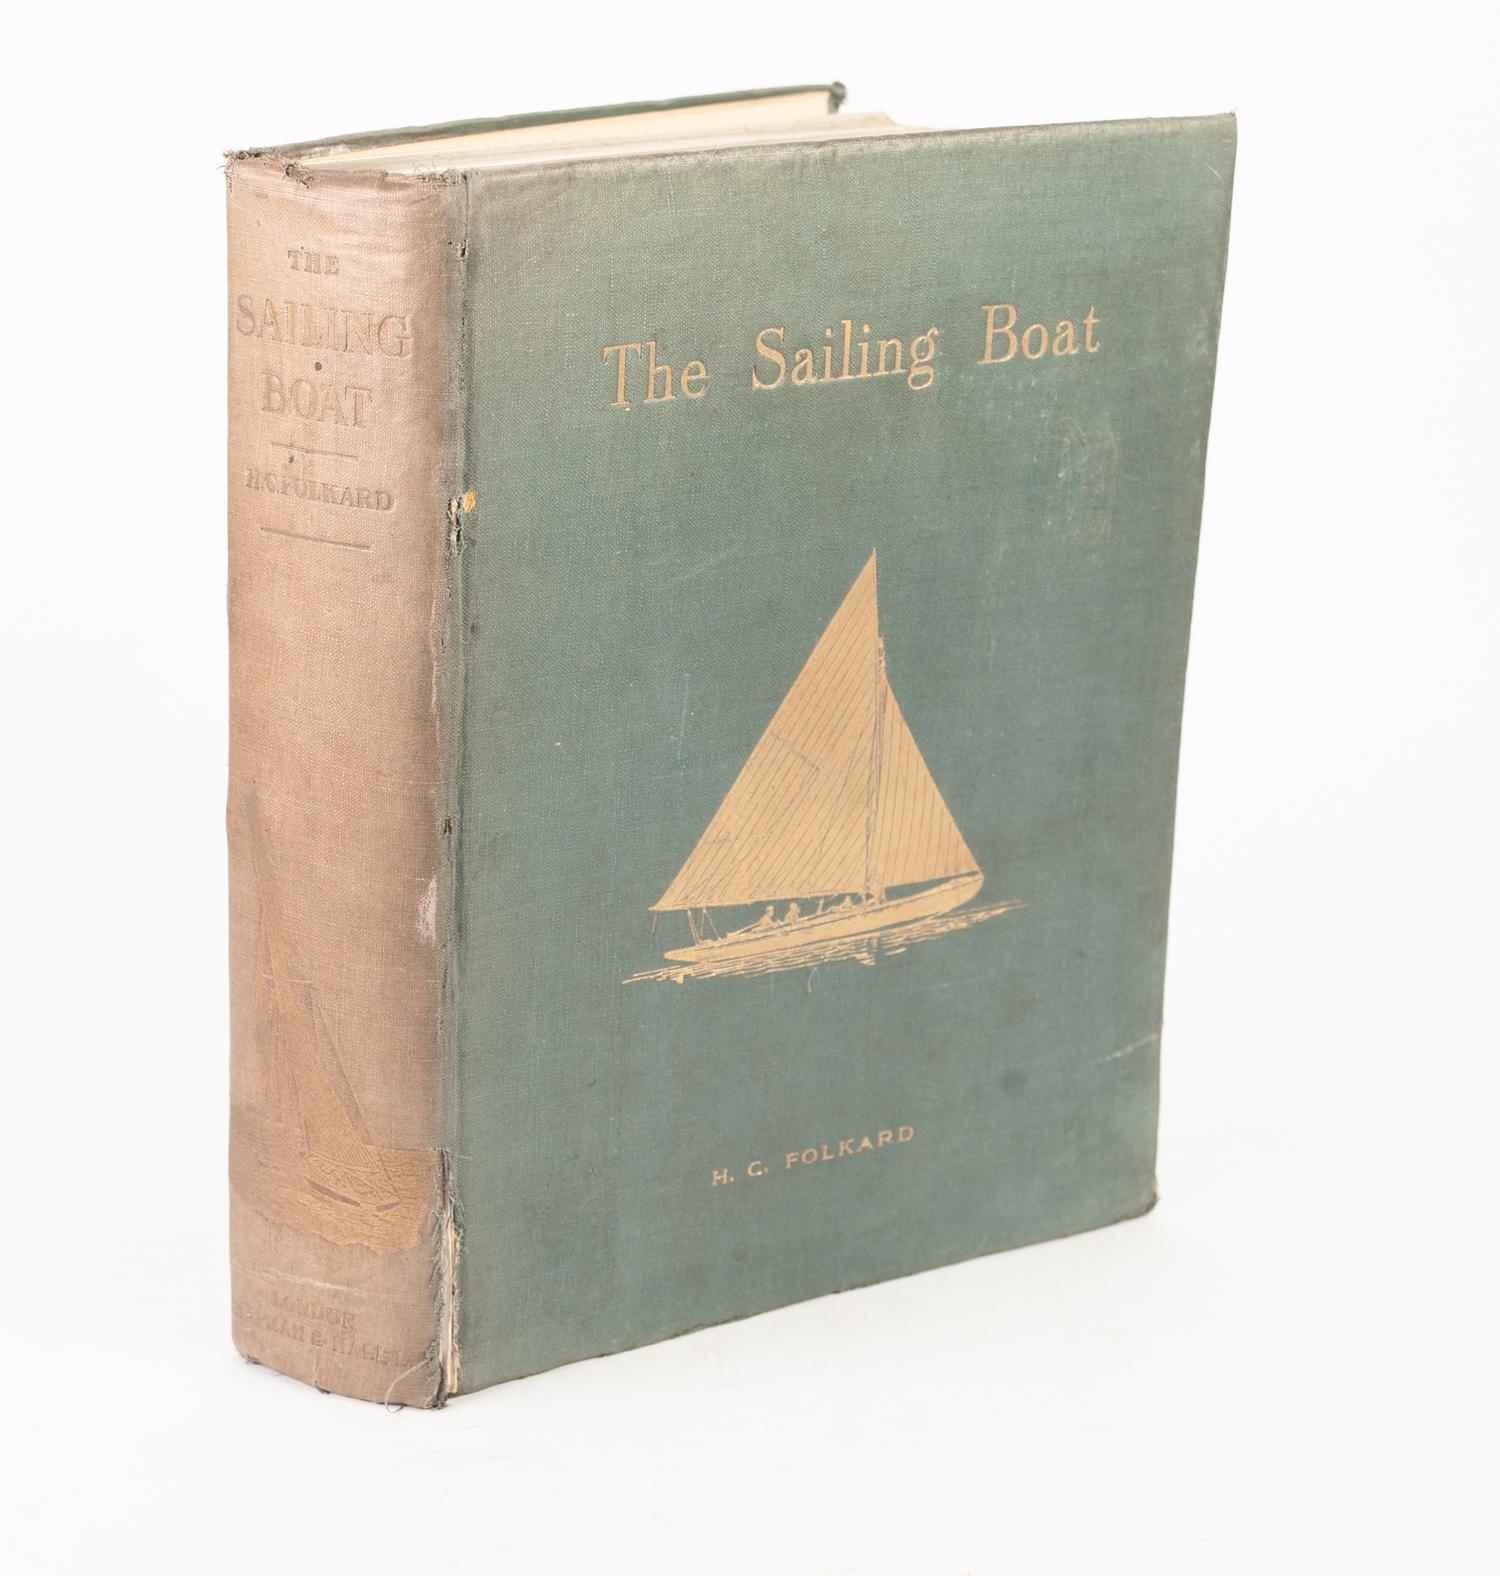 Lot 23 - HENRY COLEMAN FOLKARD, The Sailing Boat a Treatise on Sailing Boats and small yachts. Published